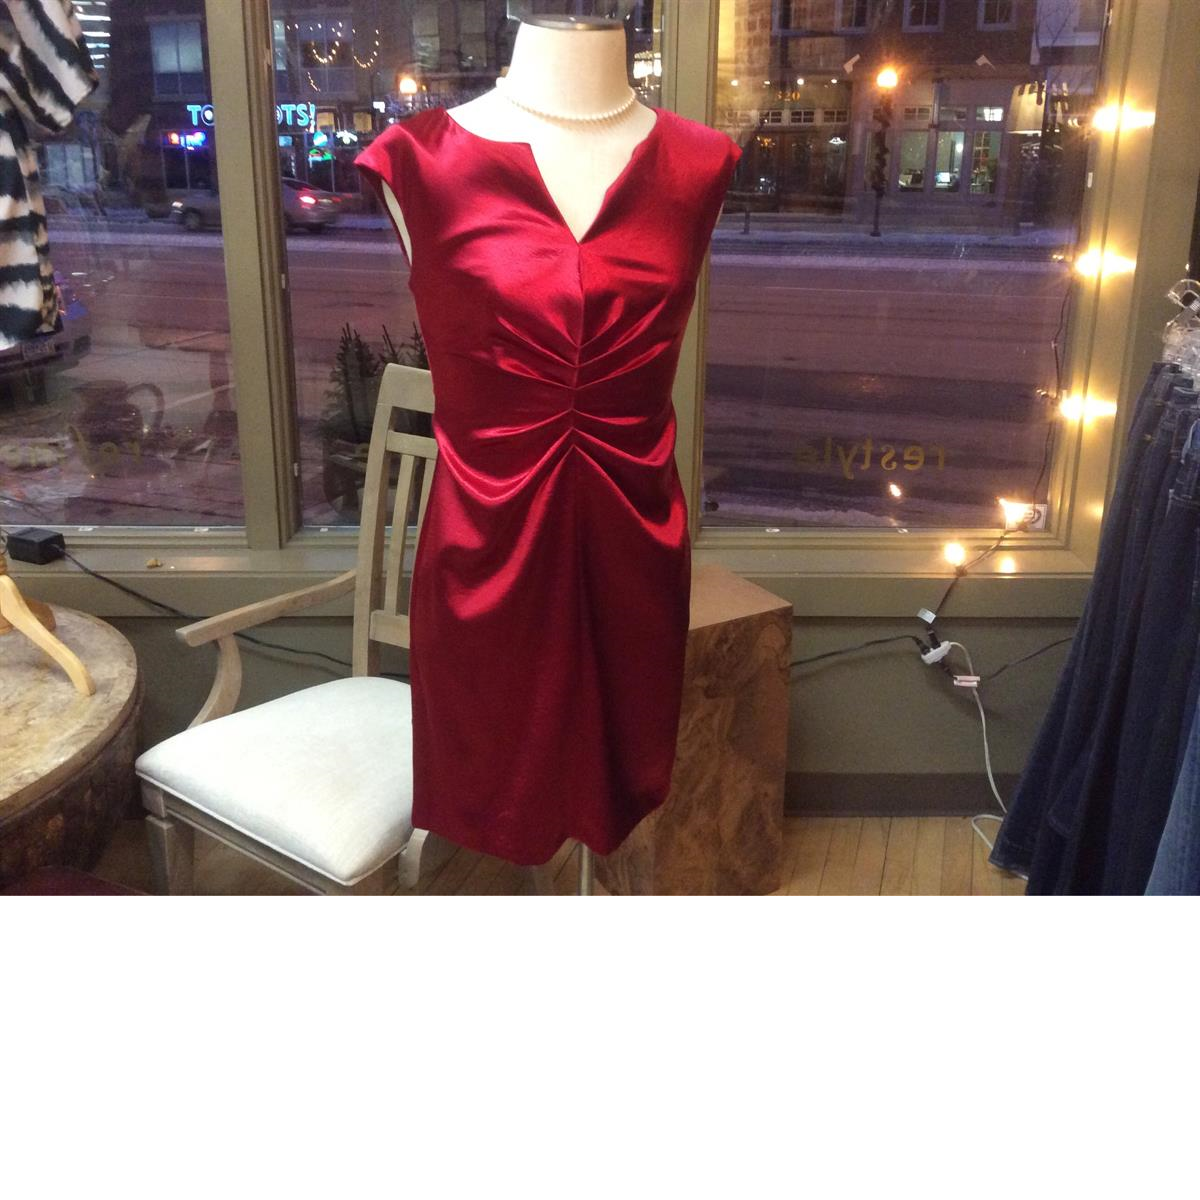 Consigned women's holiday dress at Refashion Consigned Furniture and Clothing